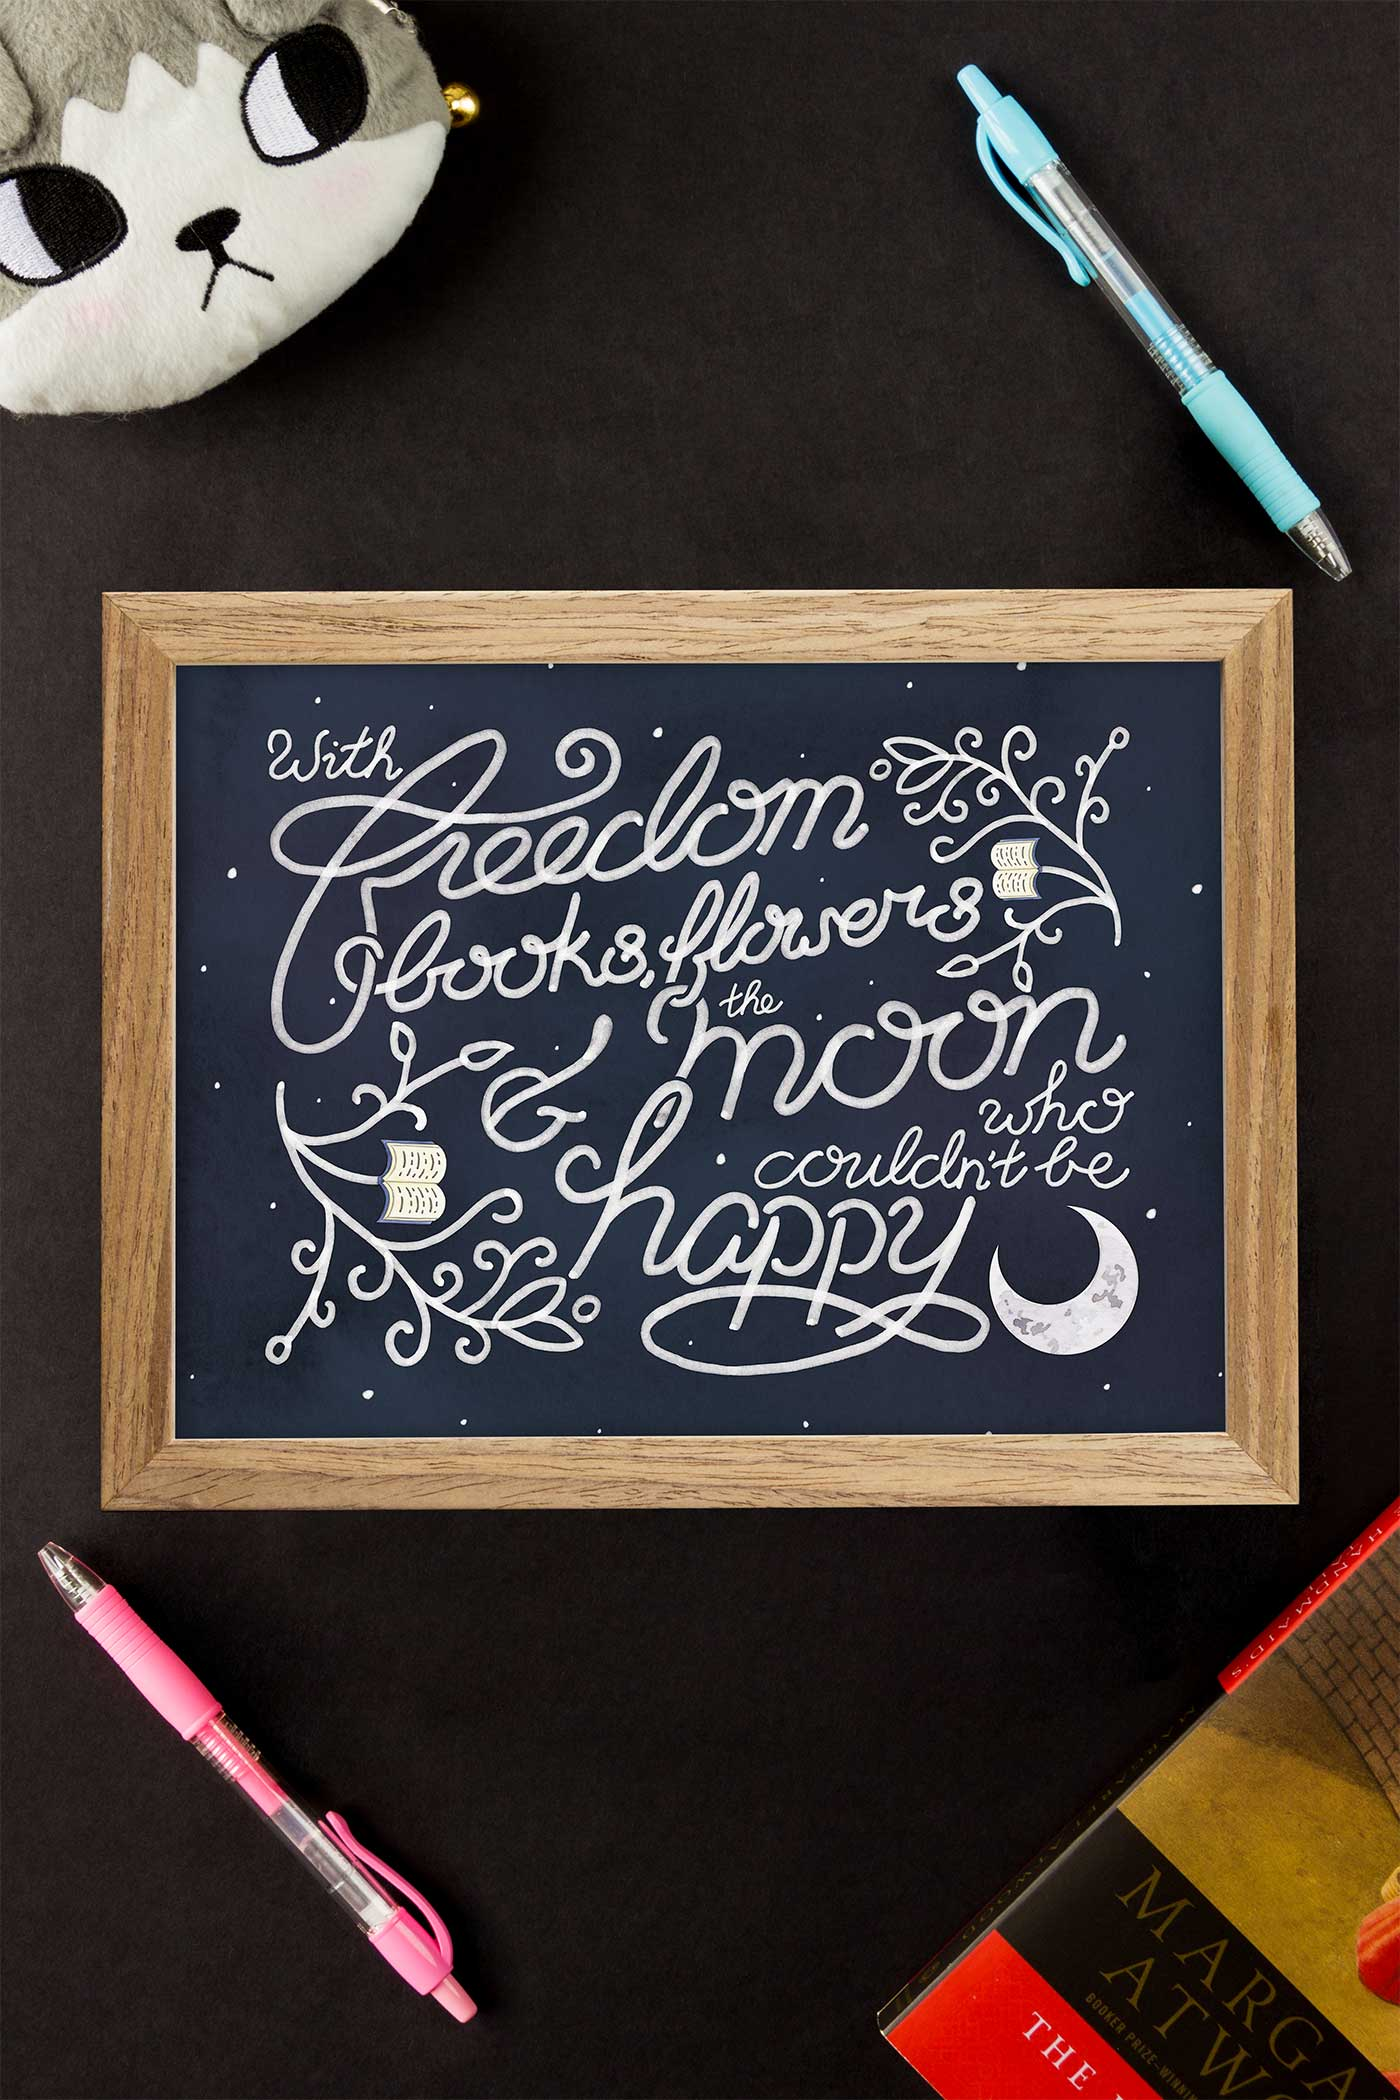 Oscar Wilde Freedom, Books, Flowers, and the Moon Quote Art Print - A Rose Cast